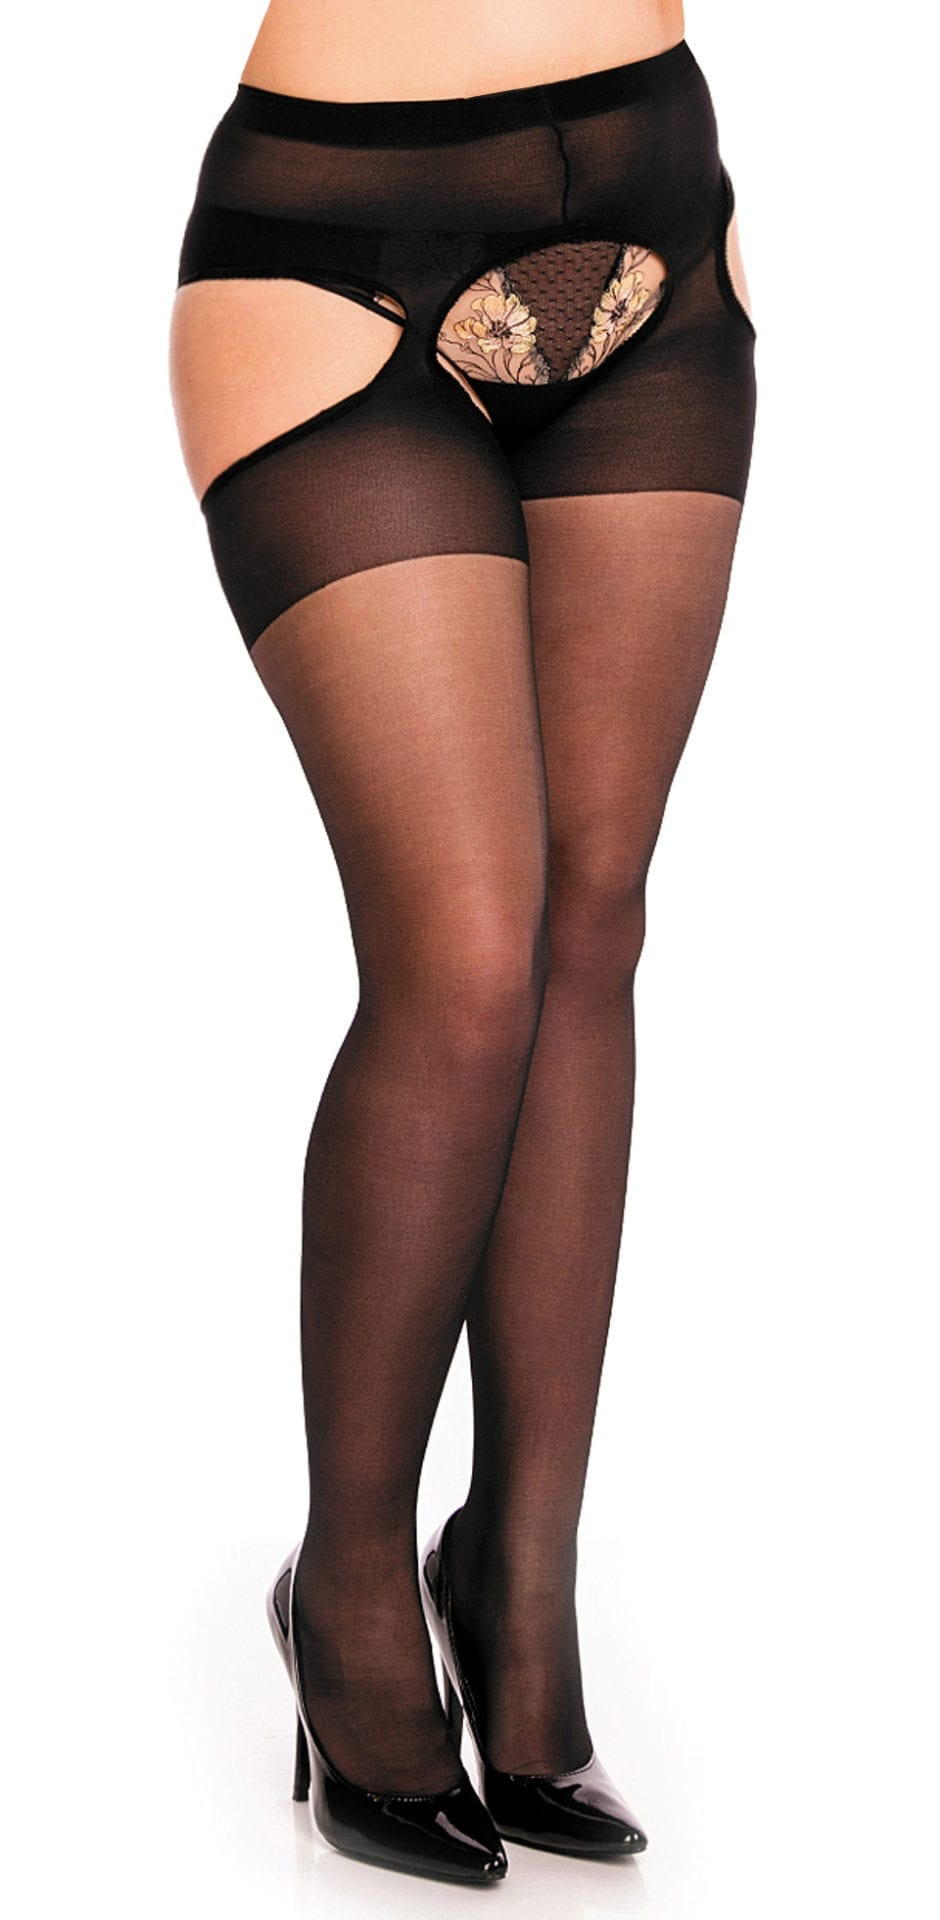 Glamory Plaisir Ouvert 20 Tights 20 denier black front veiw half body one